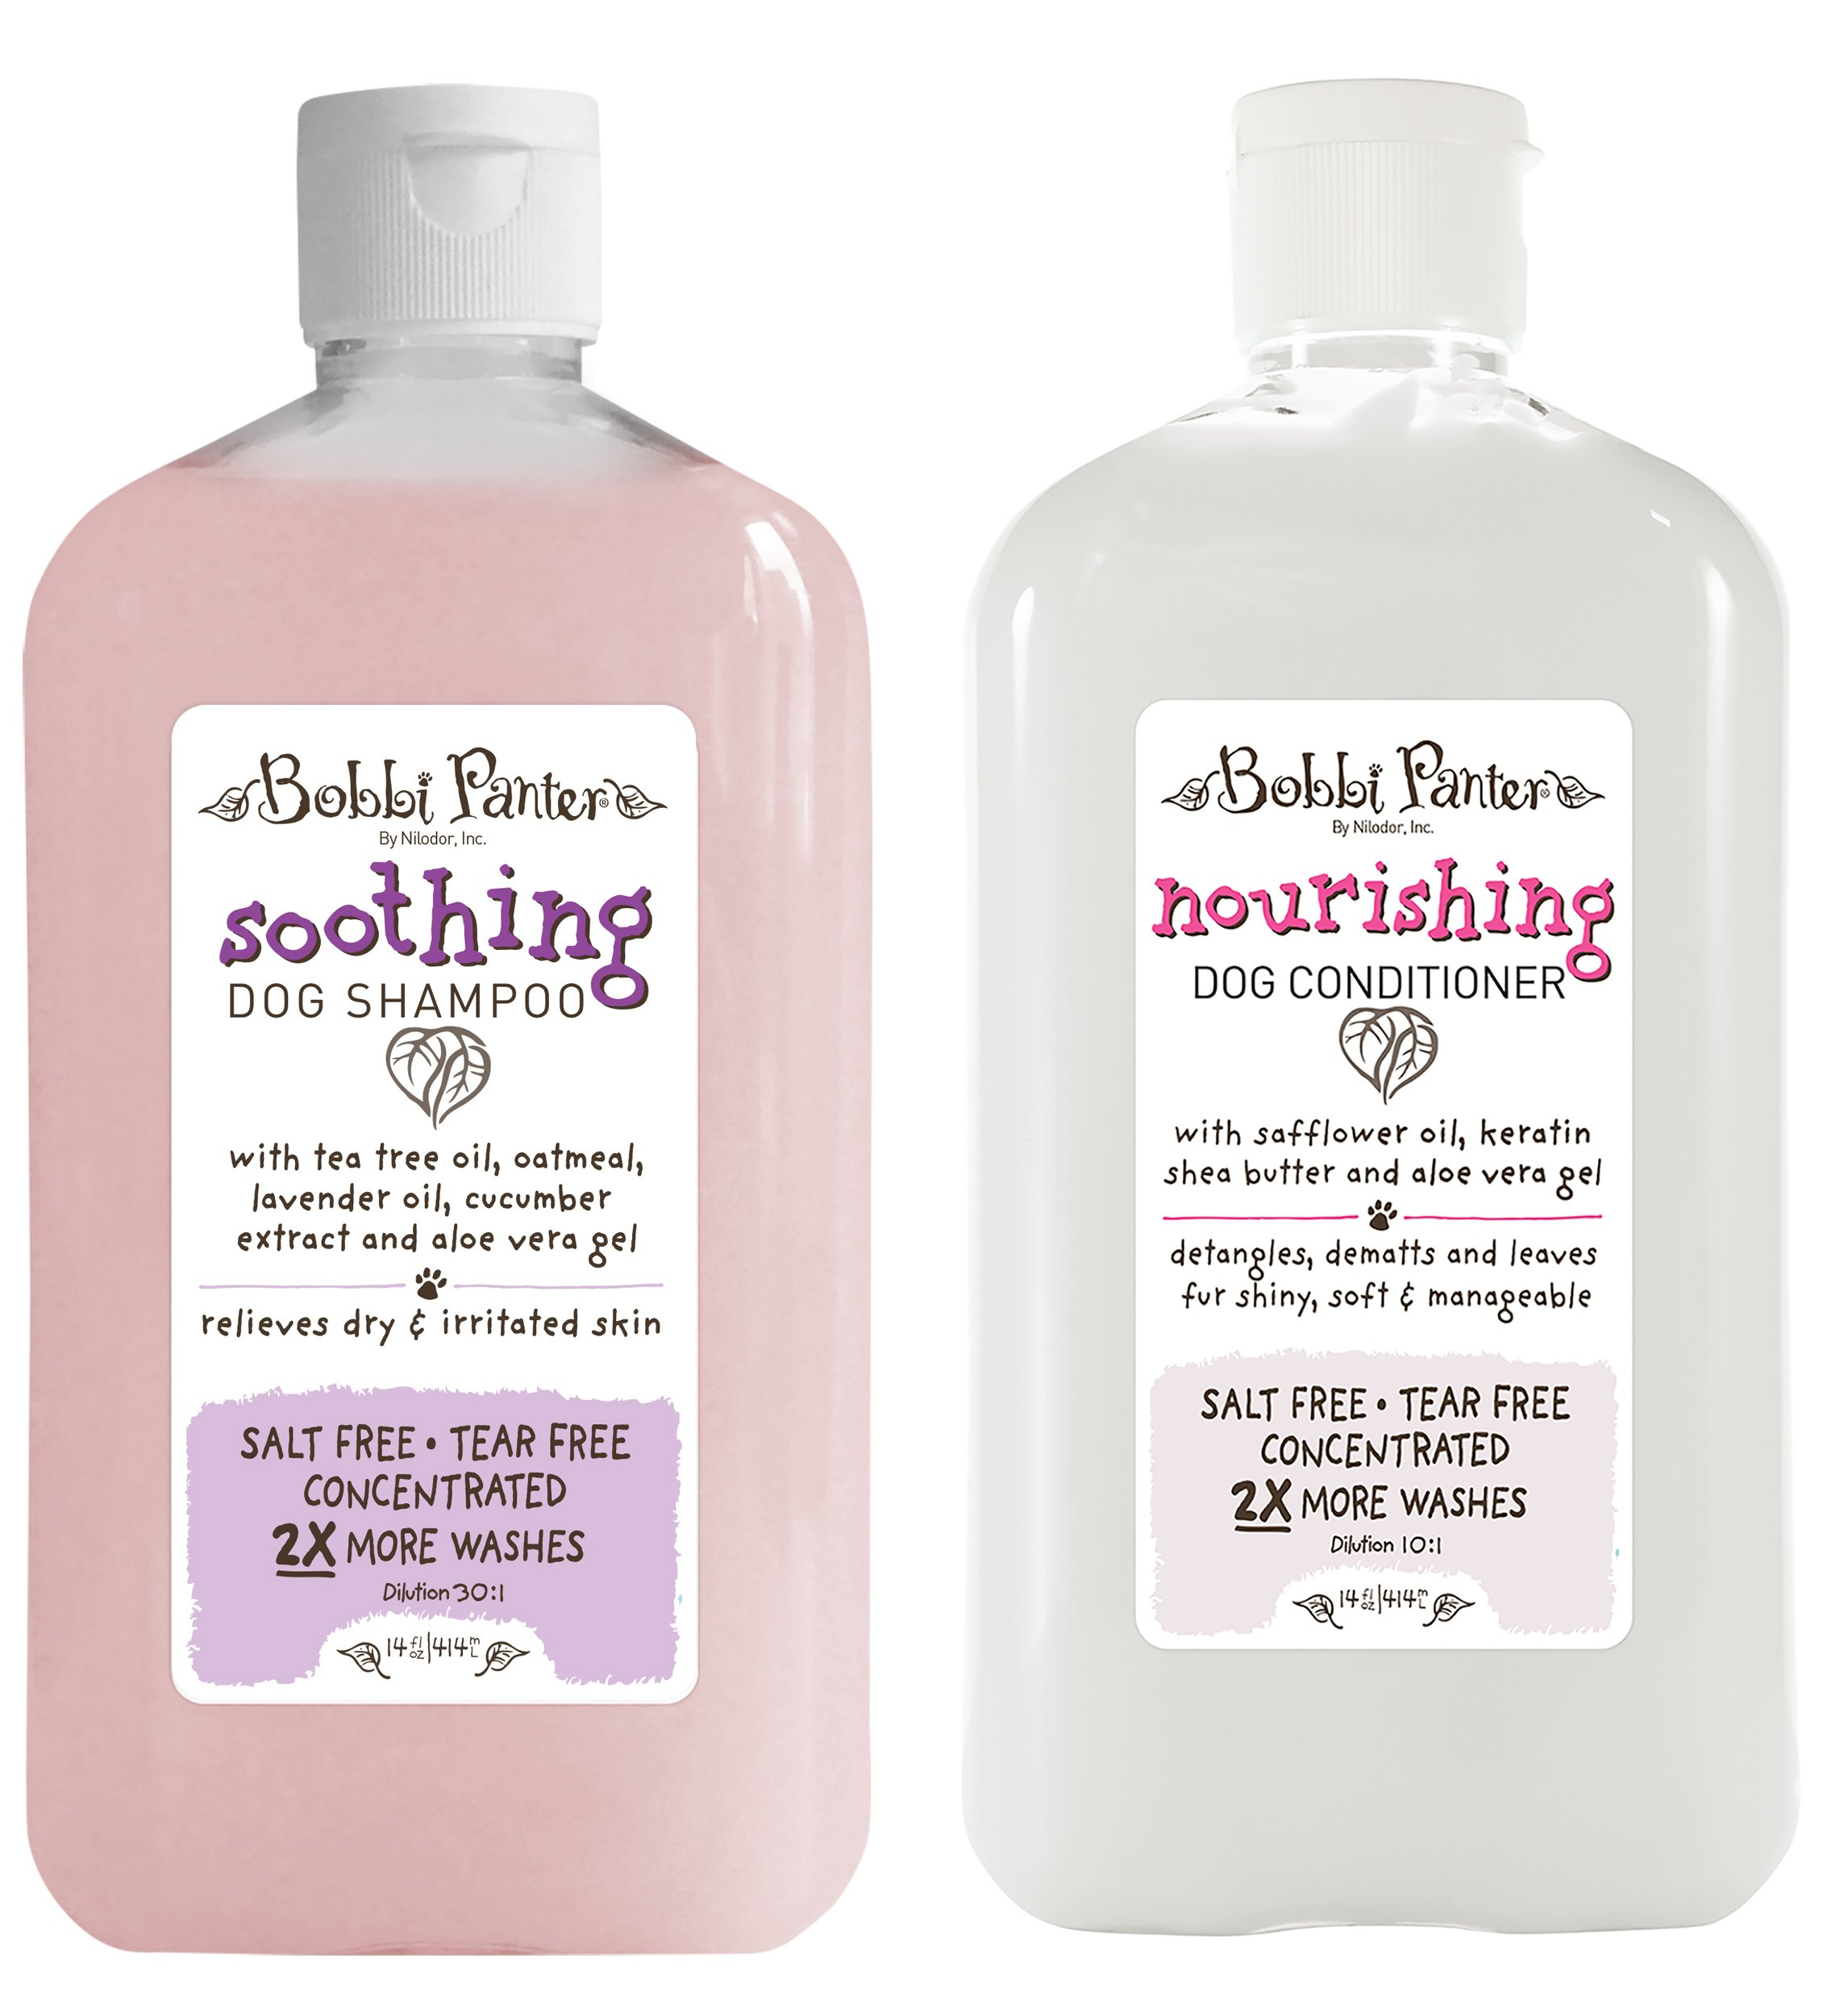 Bobbi Panter Natural Soothing Dog Shampoo and Nourishing Conditioner by Bobbi Panter